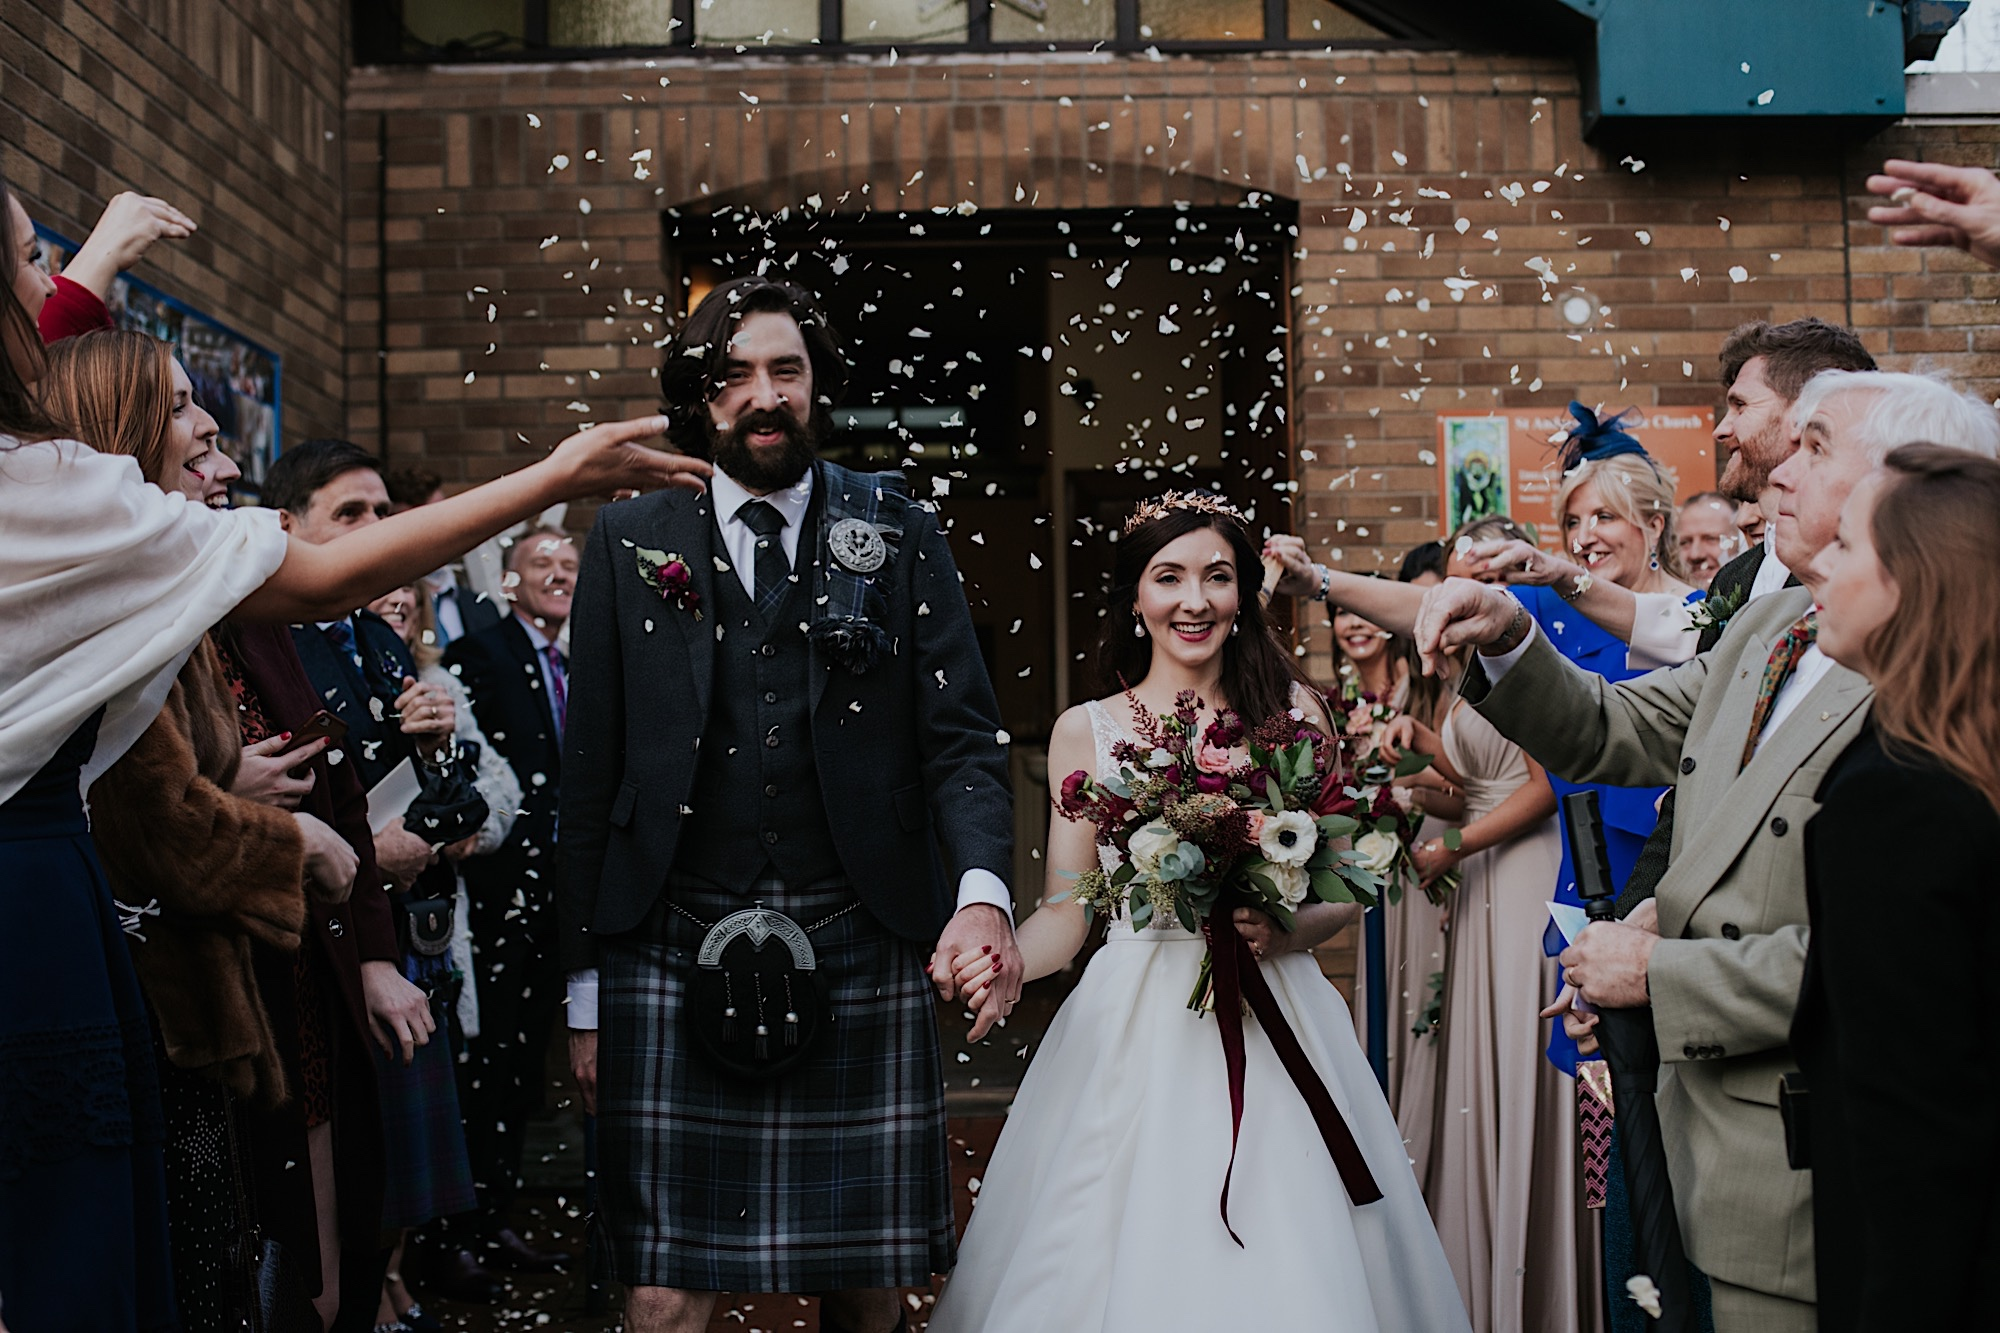 bride and groom haveing confetti thrown at them